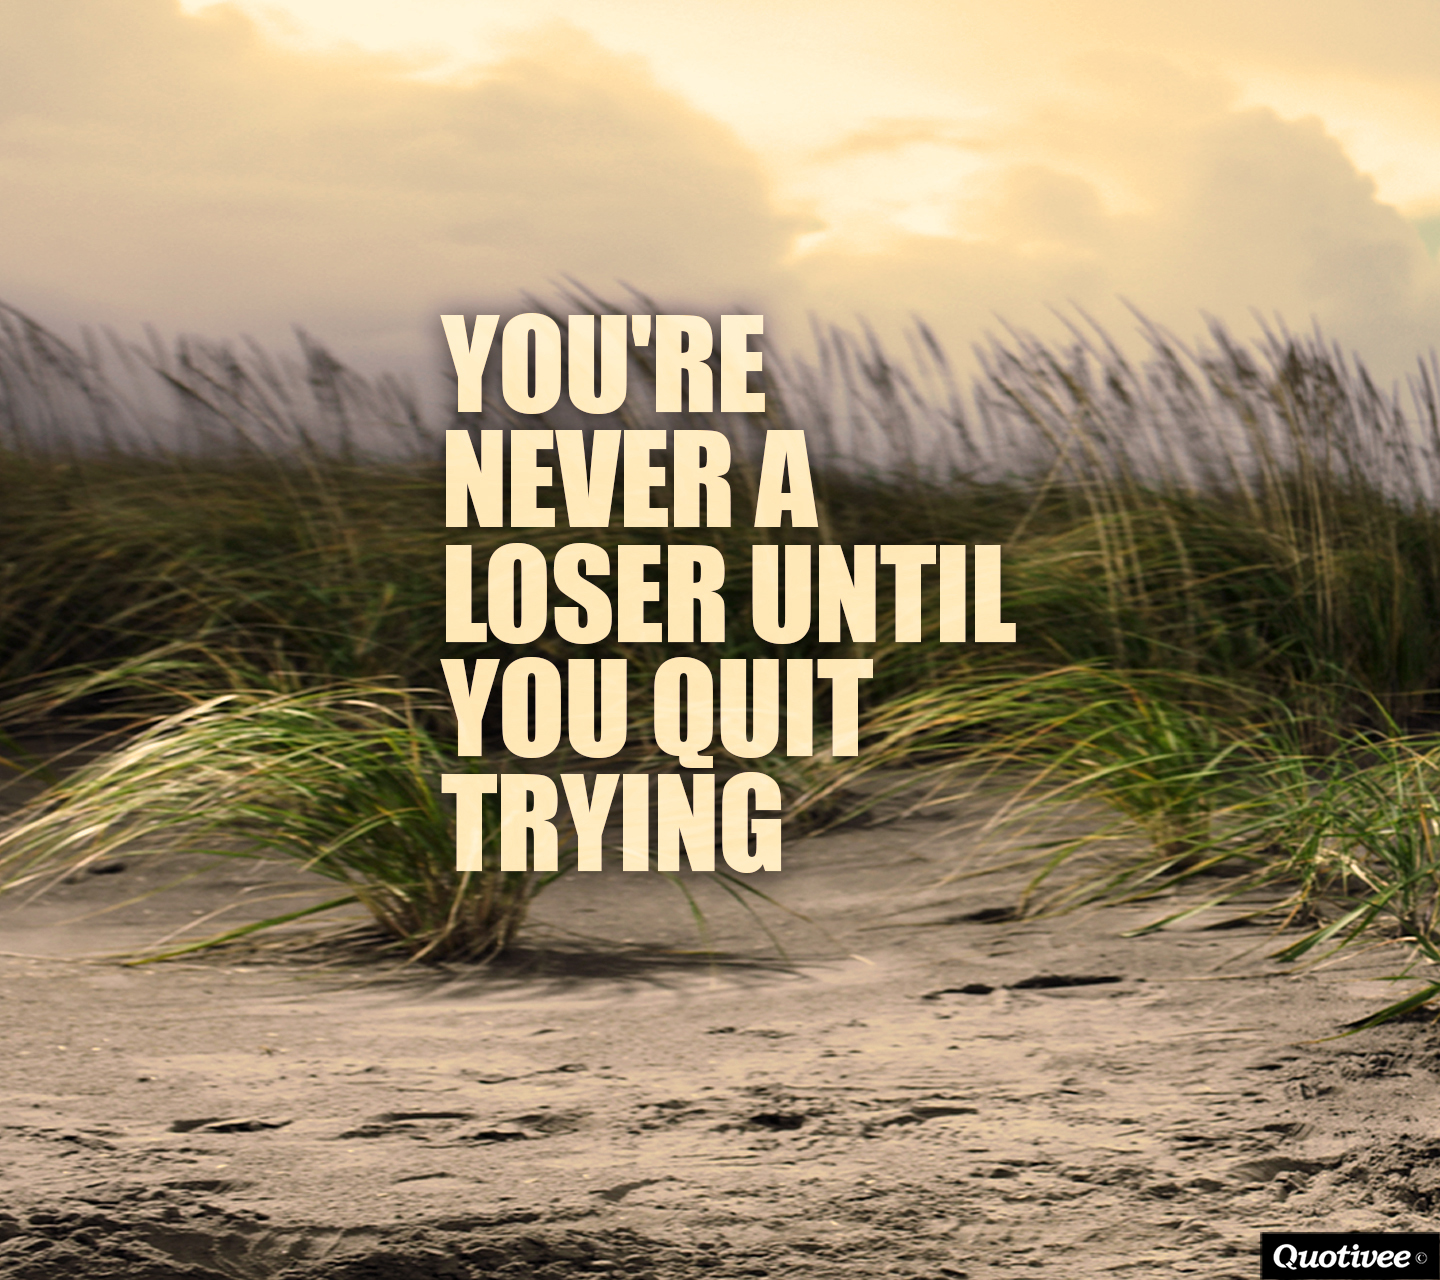 Business Inspirational Quotes Wallpaper Download You Re Never A Loser Until You Quit Trying Inspirational